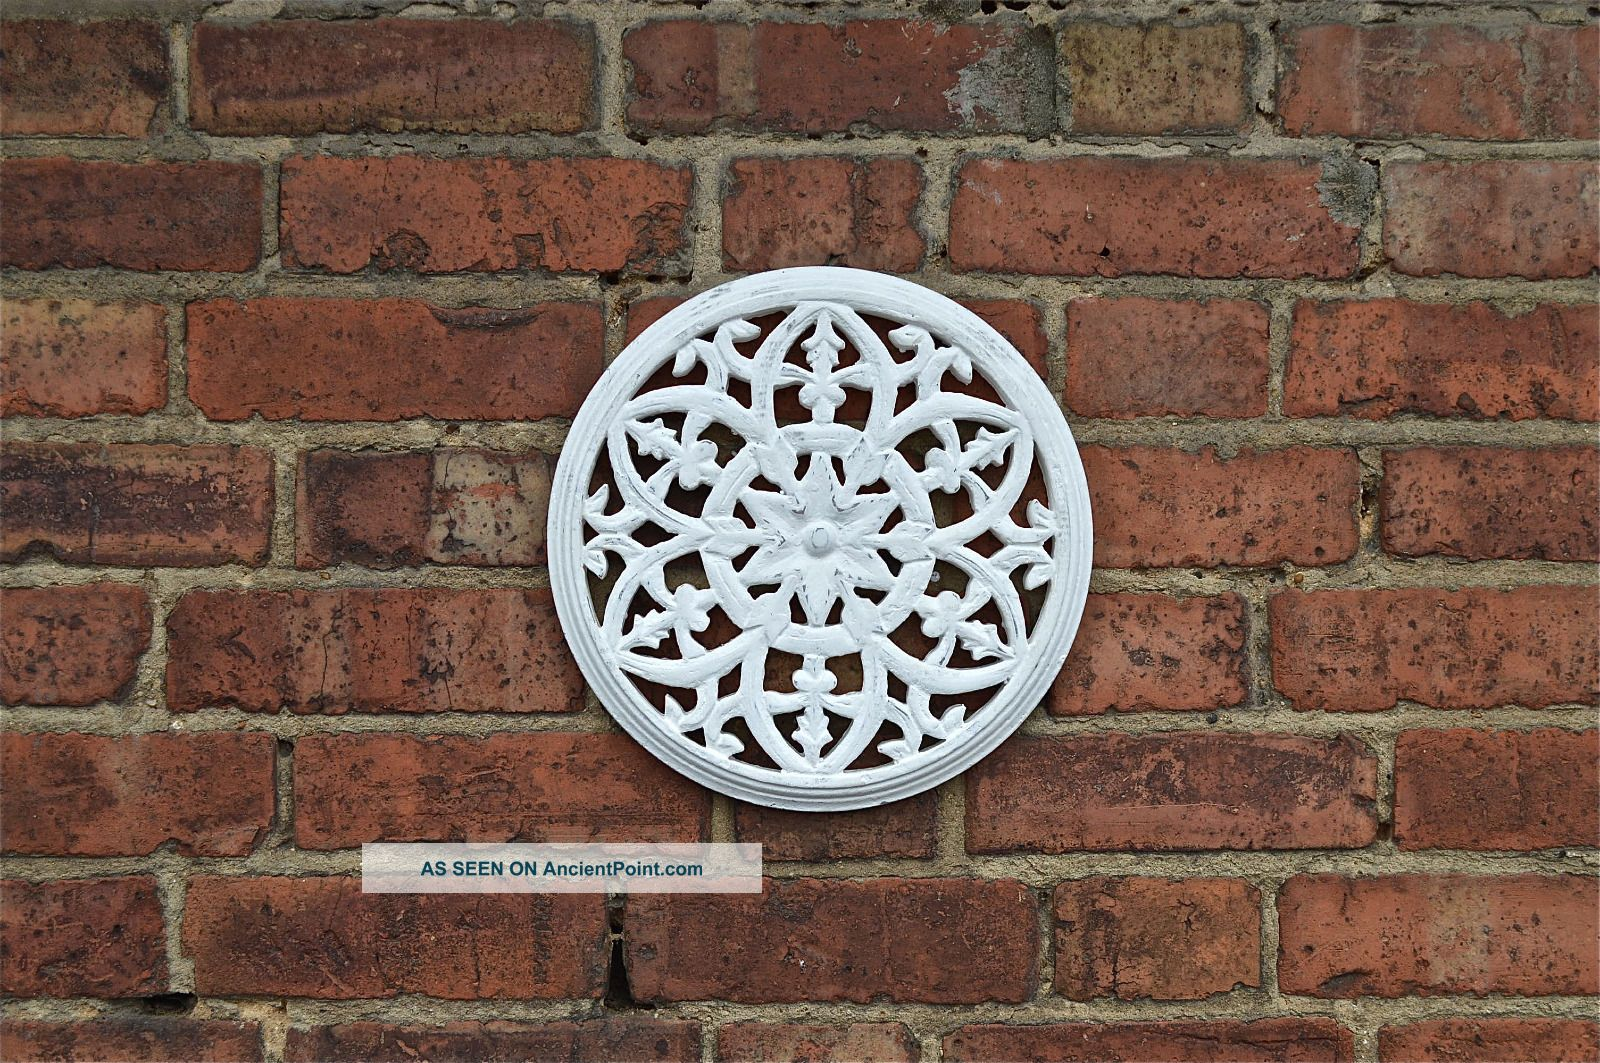 Gothic Antiqued White Paint Fret Carved Wooden Roundel Grill Wall Art Other Antique Hardware photo